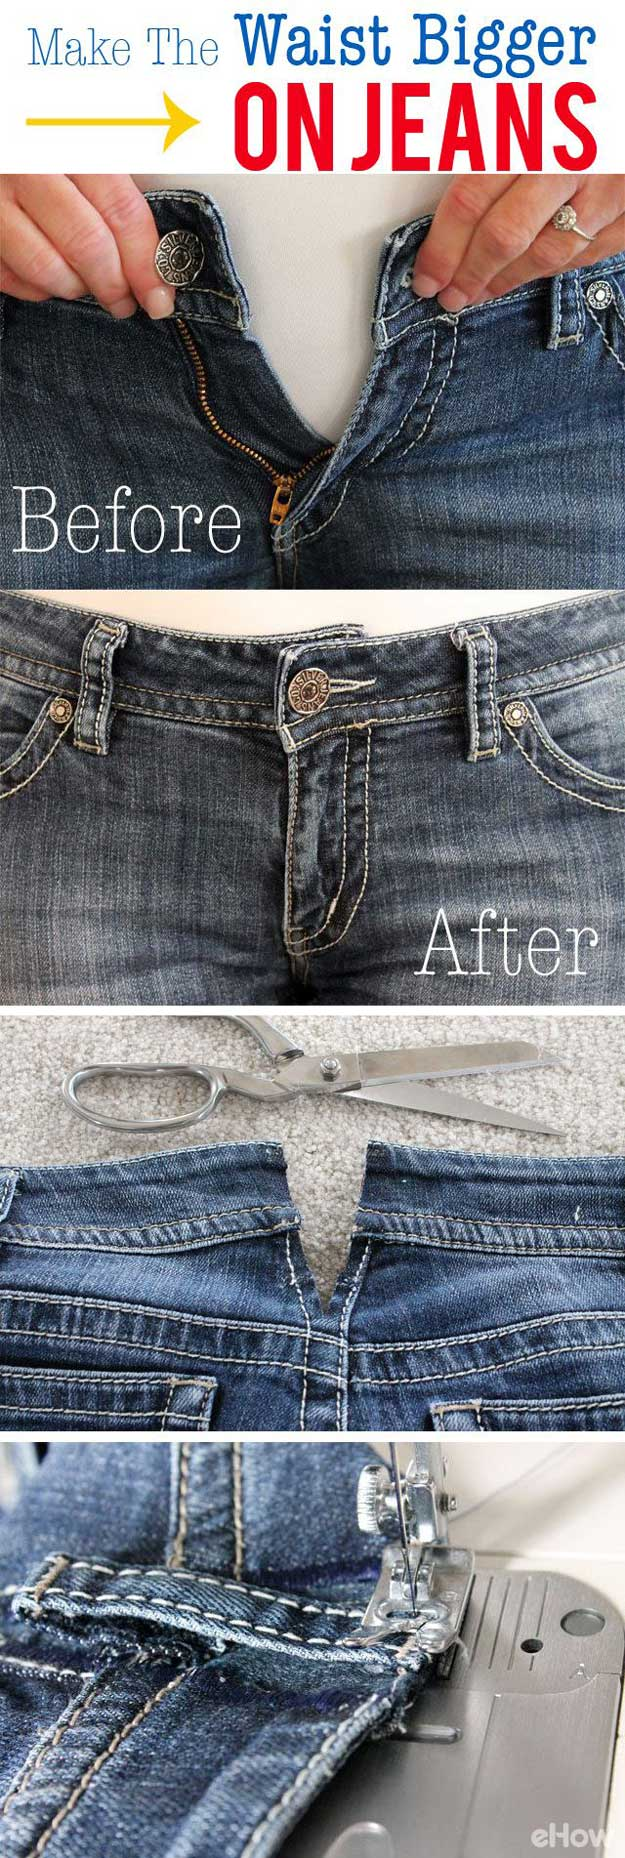 Sewing Hacks | Best Tips and Tricks for Sewing Patterns, Projects, Machines, Hand Sewn Items. Clever Ideas for Beginners and Even Experts  |  How To Make The Waist Bigger on Jeans  |  http://diyjoy.com/sewing-hacks